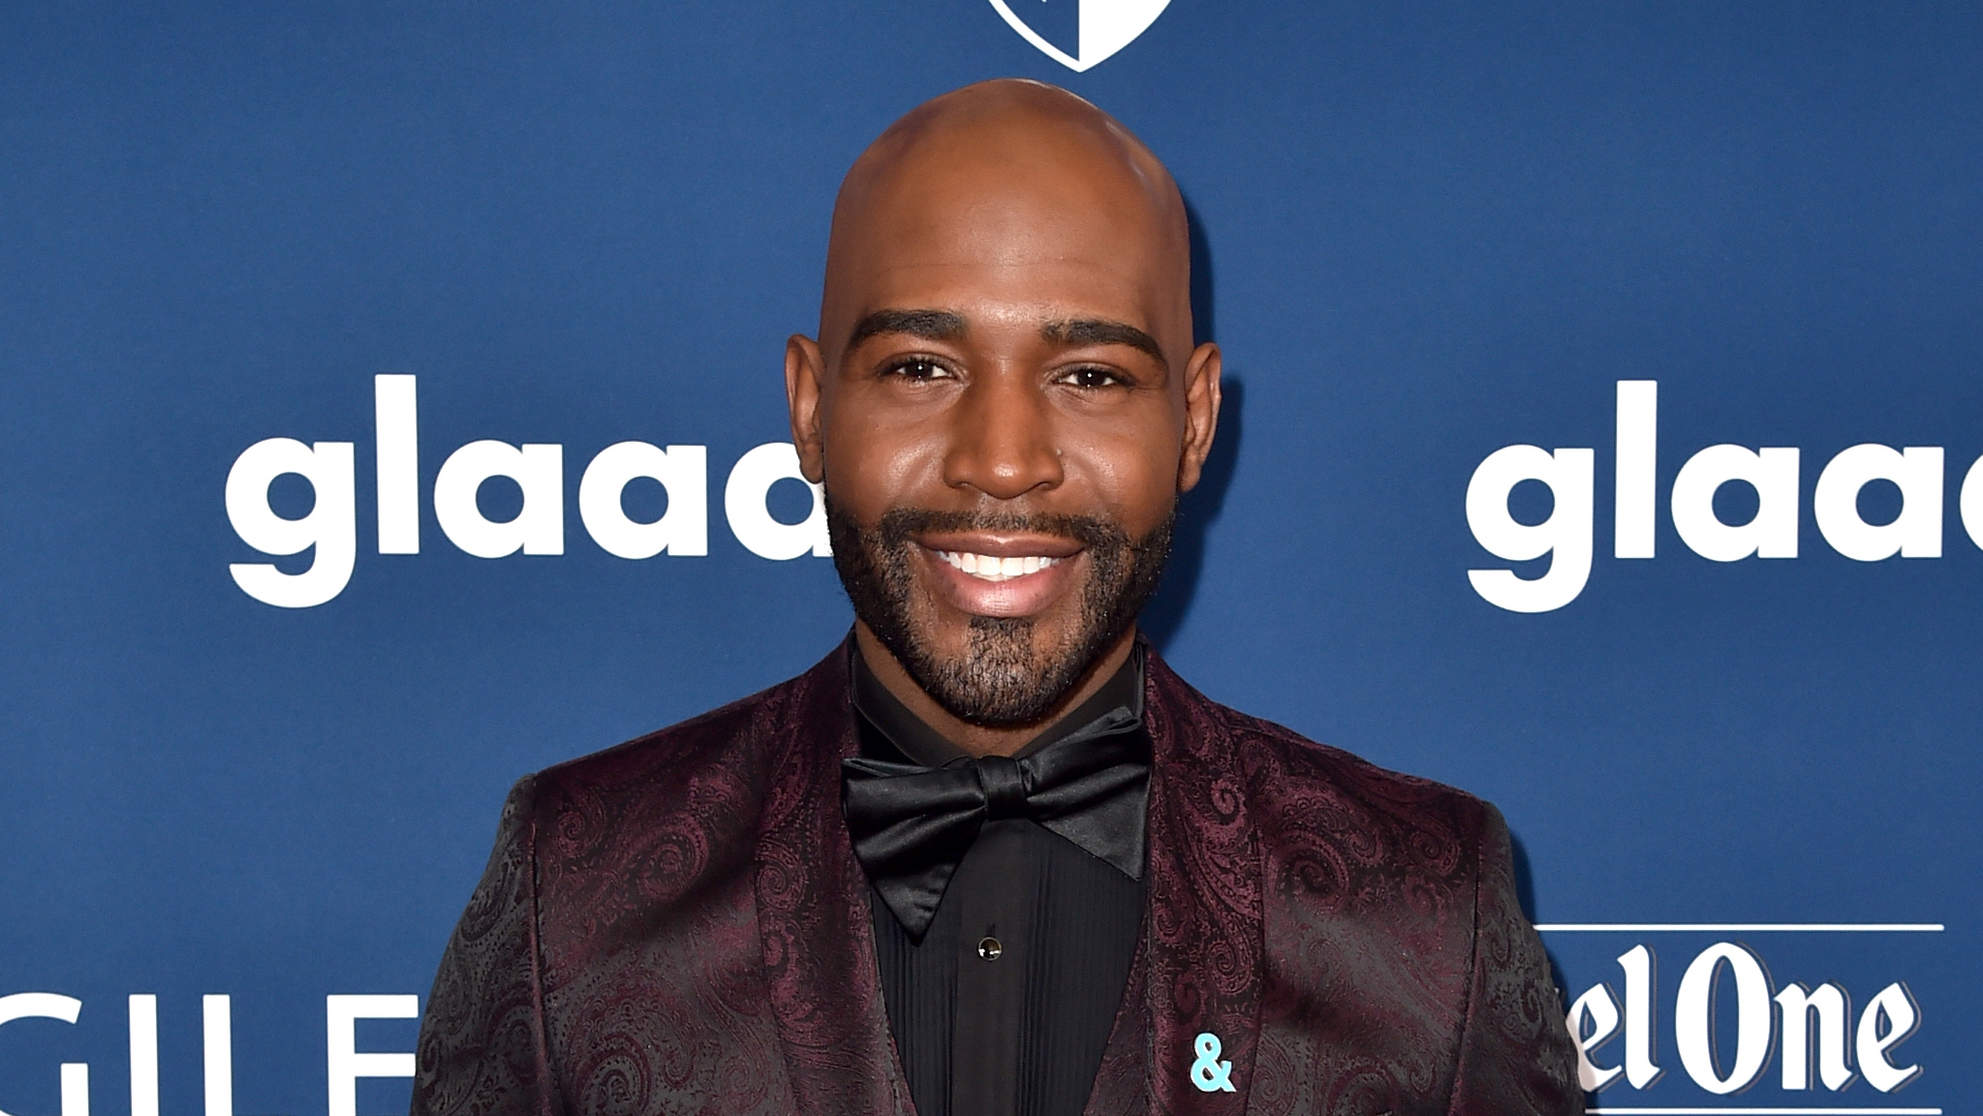 Karamo Brown Reveals Past Suicide Attempt in Inspiring Video: 'Things Do Get Better'